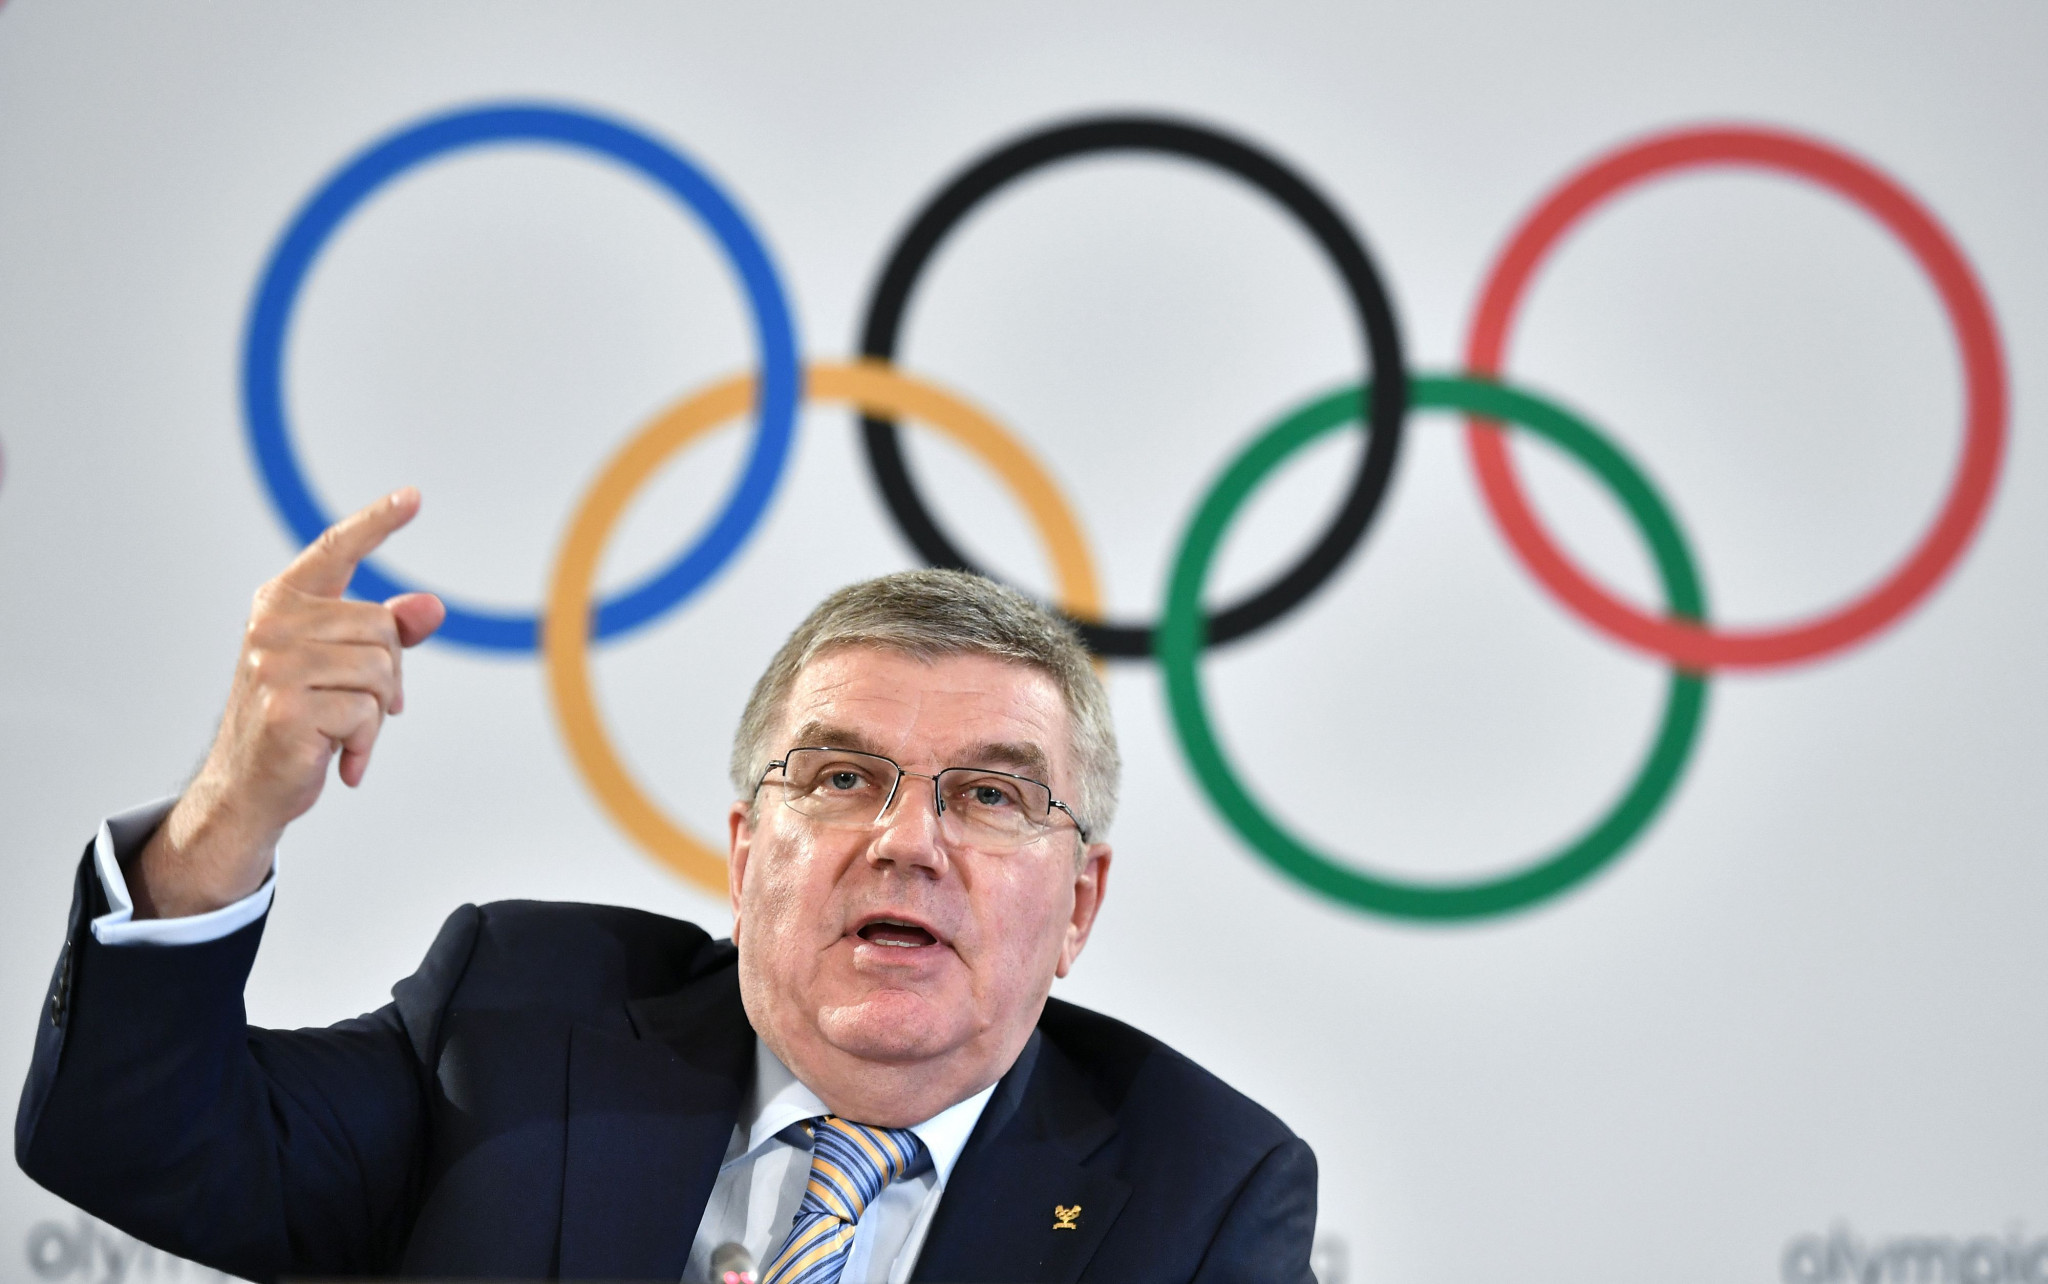 IOC approves idea to light Tokyo 2020 Olympic flame on ninth anniversary of 2011 earthquake